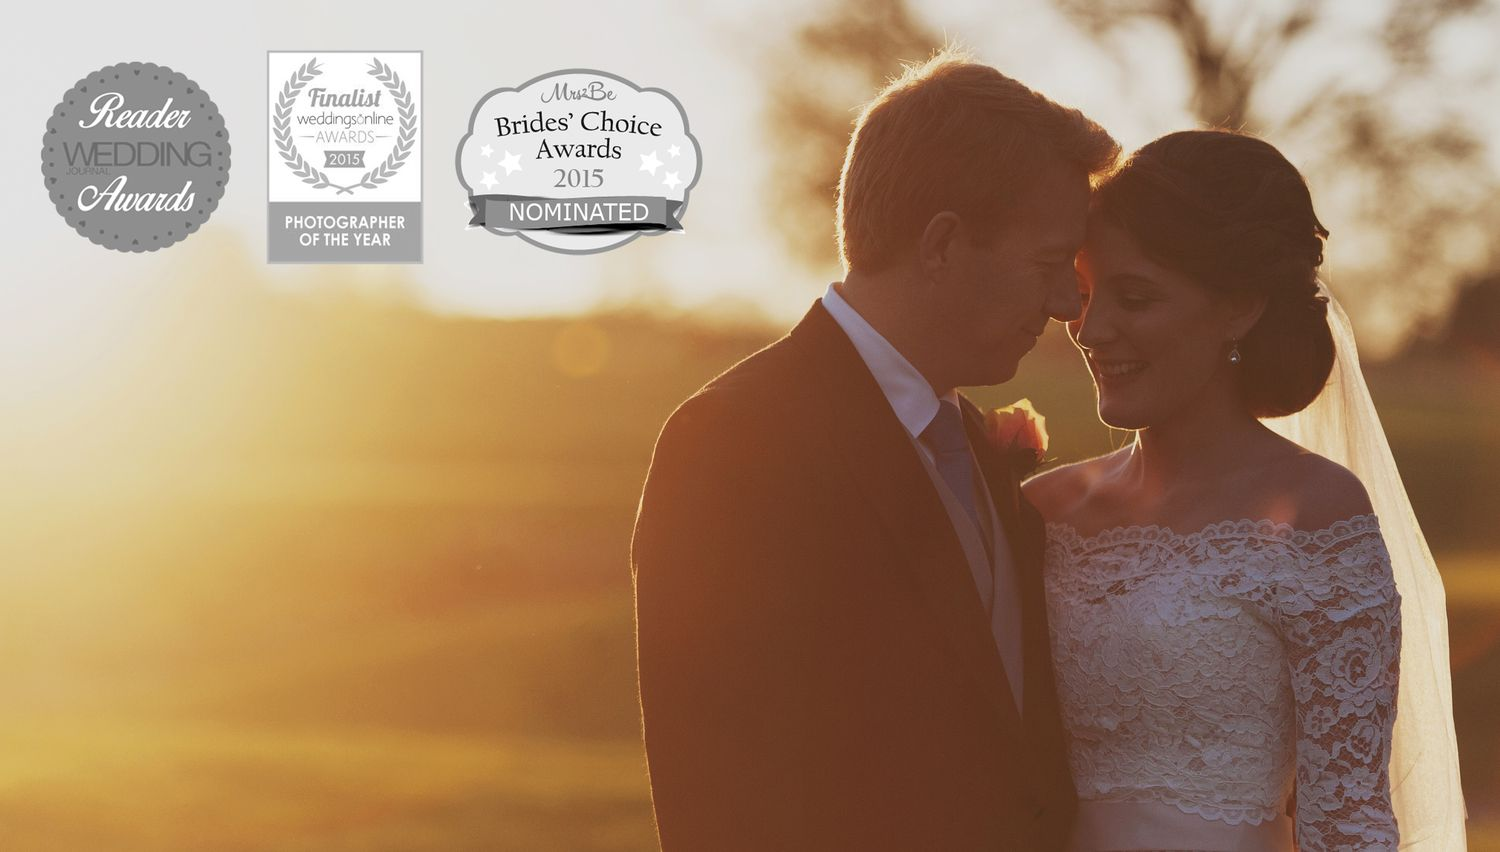 Wedding photographers and videographers. Weddings by KARA provides high quality wedding photography and videography.